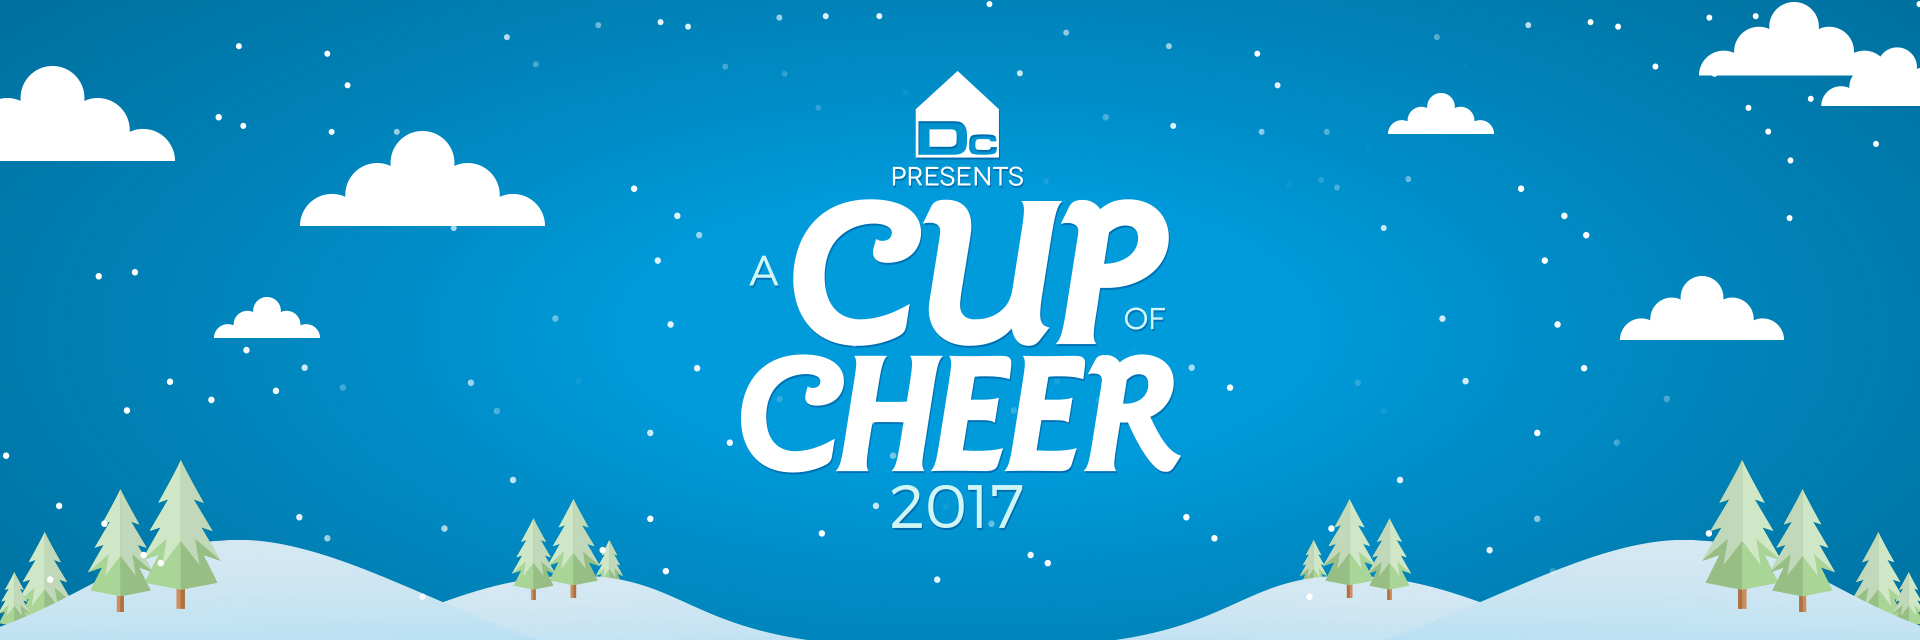 Dc Presents: Cup of Cheer 2017